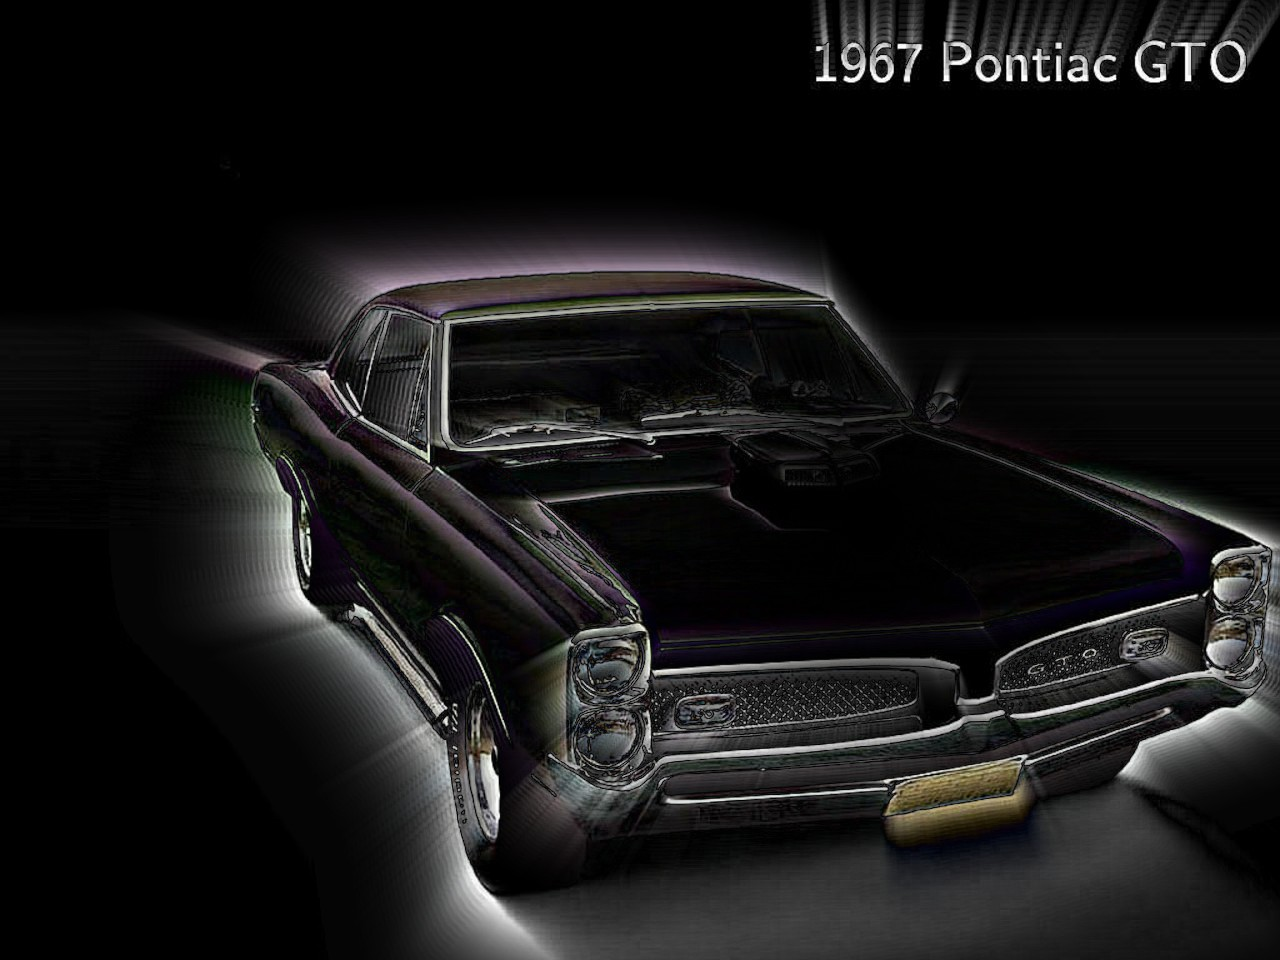 1967 Pontiac GTO wallpaper   ForWallpapercom 1280x960